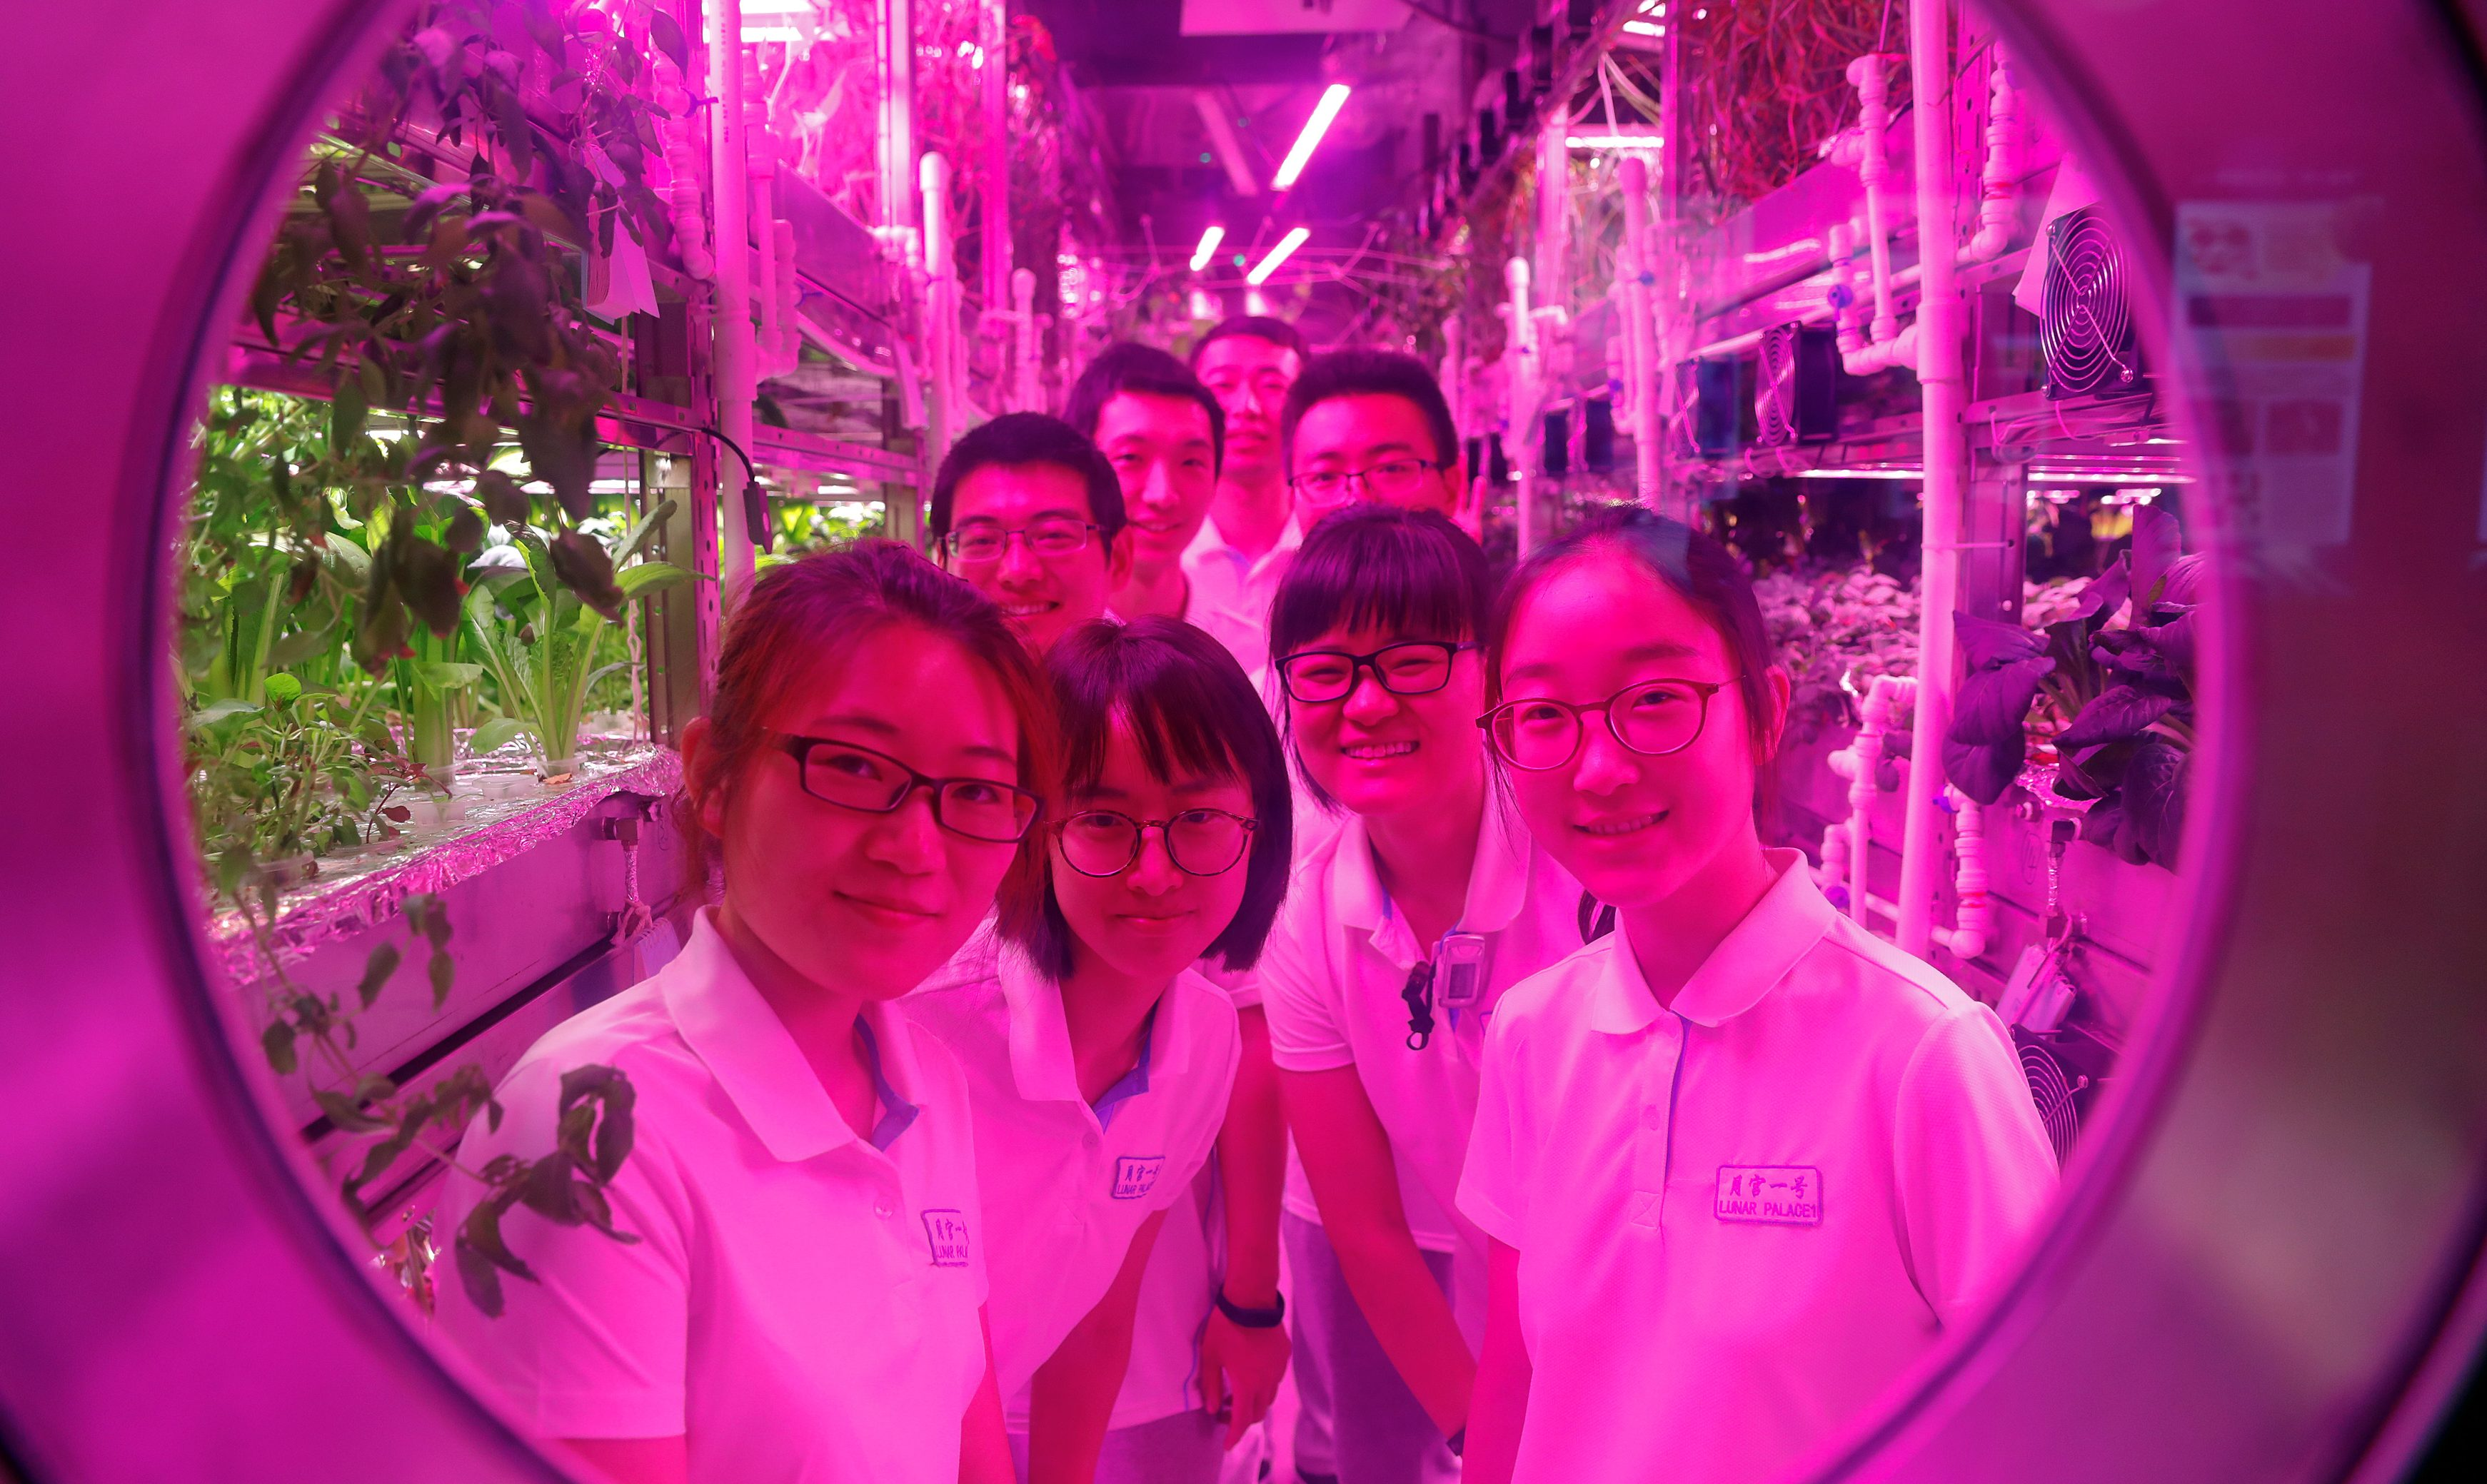 Volunteers smile from inside a simulated space cabin in which they temporarily live as a part of the scientistic Lunar Palace 365 Project, at Beihang University in Beijing, China July 9, 2017. A group of four volunteers entered the Lunar Palace, a space of 160 square meters, China's first bioregenerative life-support base where they will live for next 200 days replacing another group who spent previous 60 days inside the simulated cabin testing how a life-support system works in a moon-like environment.